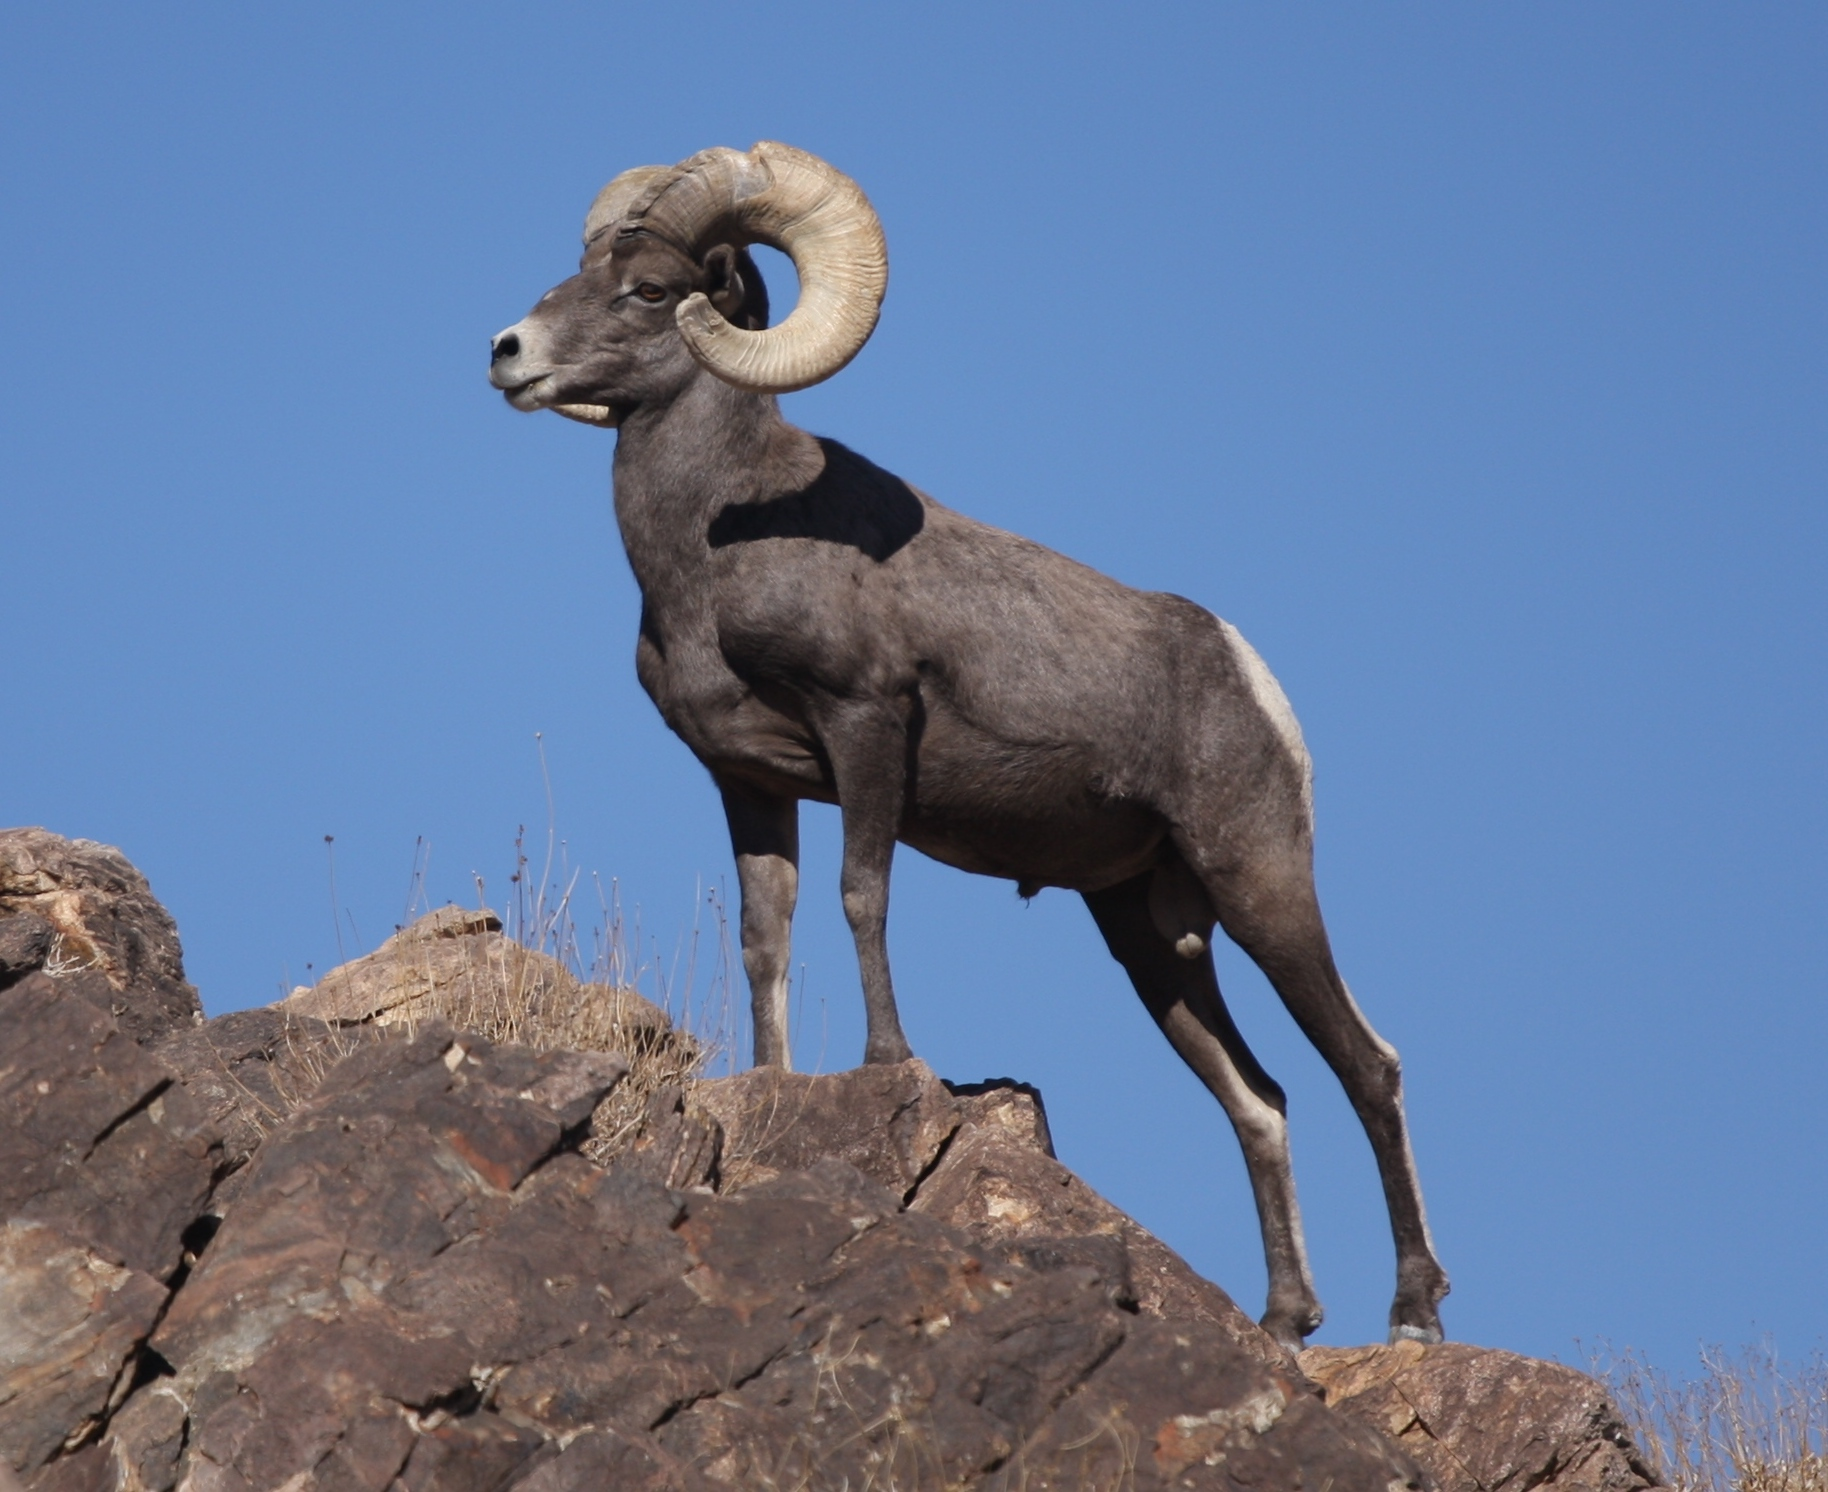 A bighorn sheep standing atop a rock.